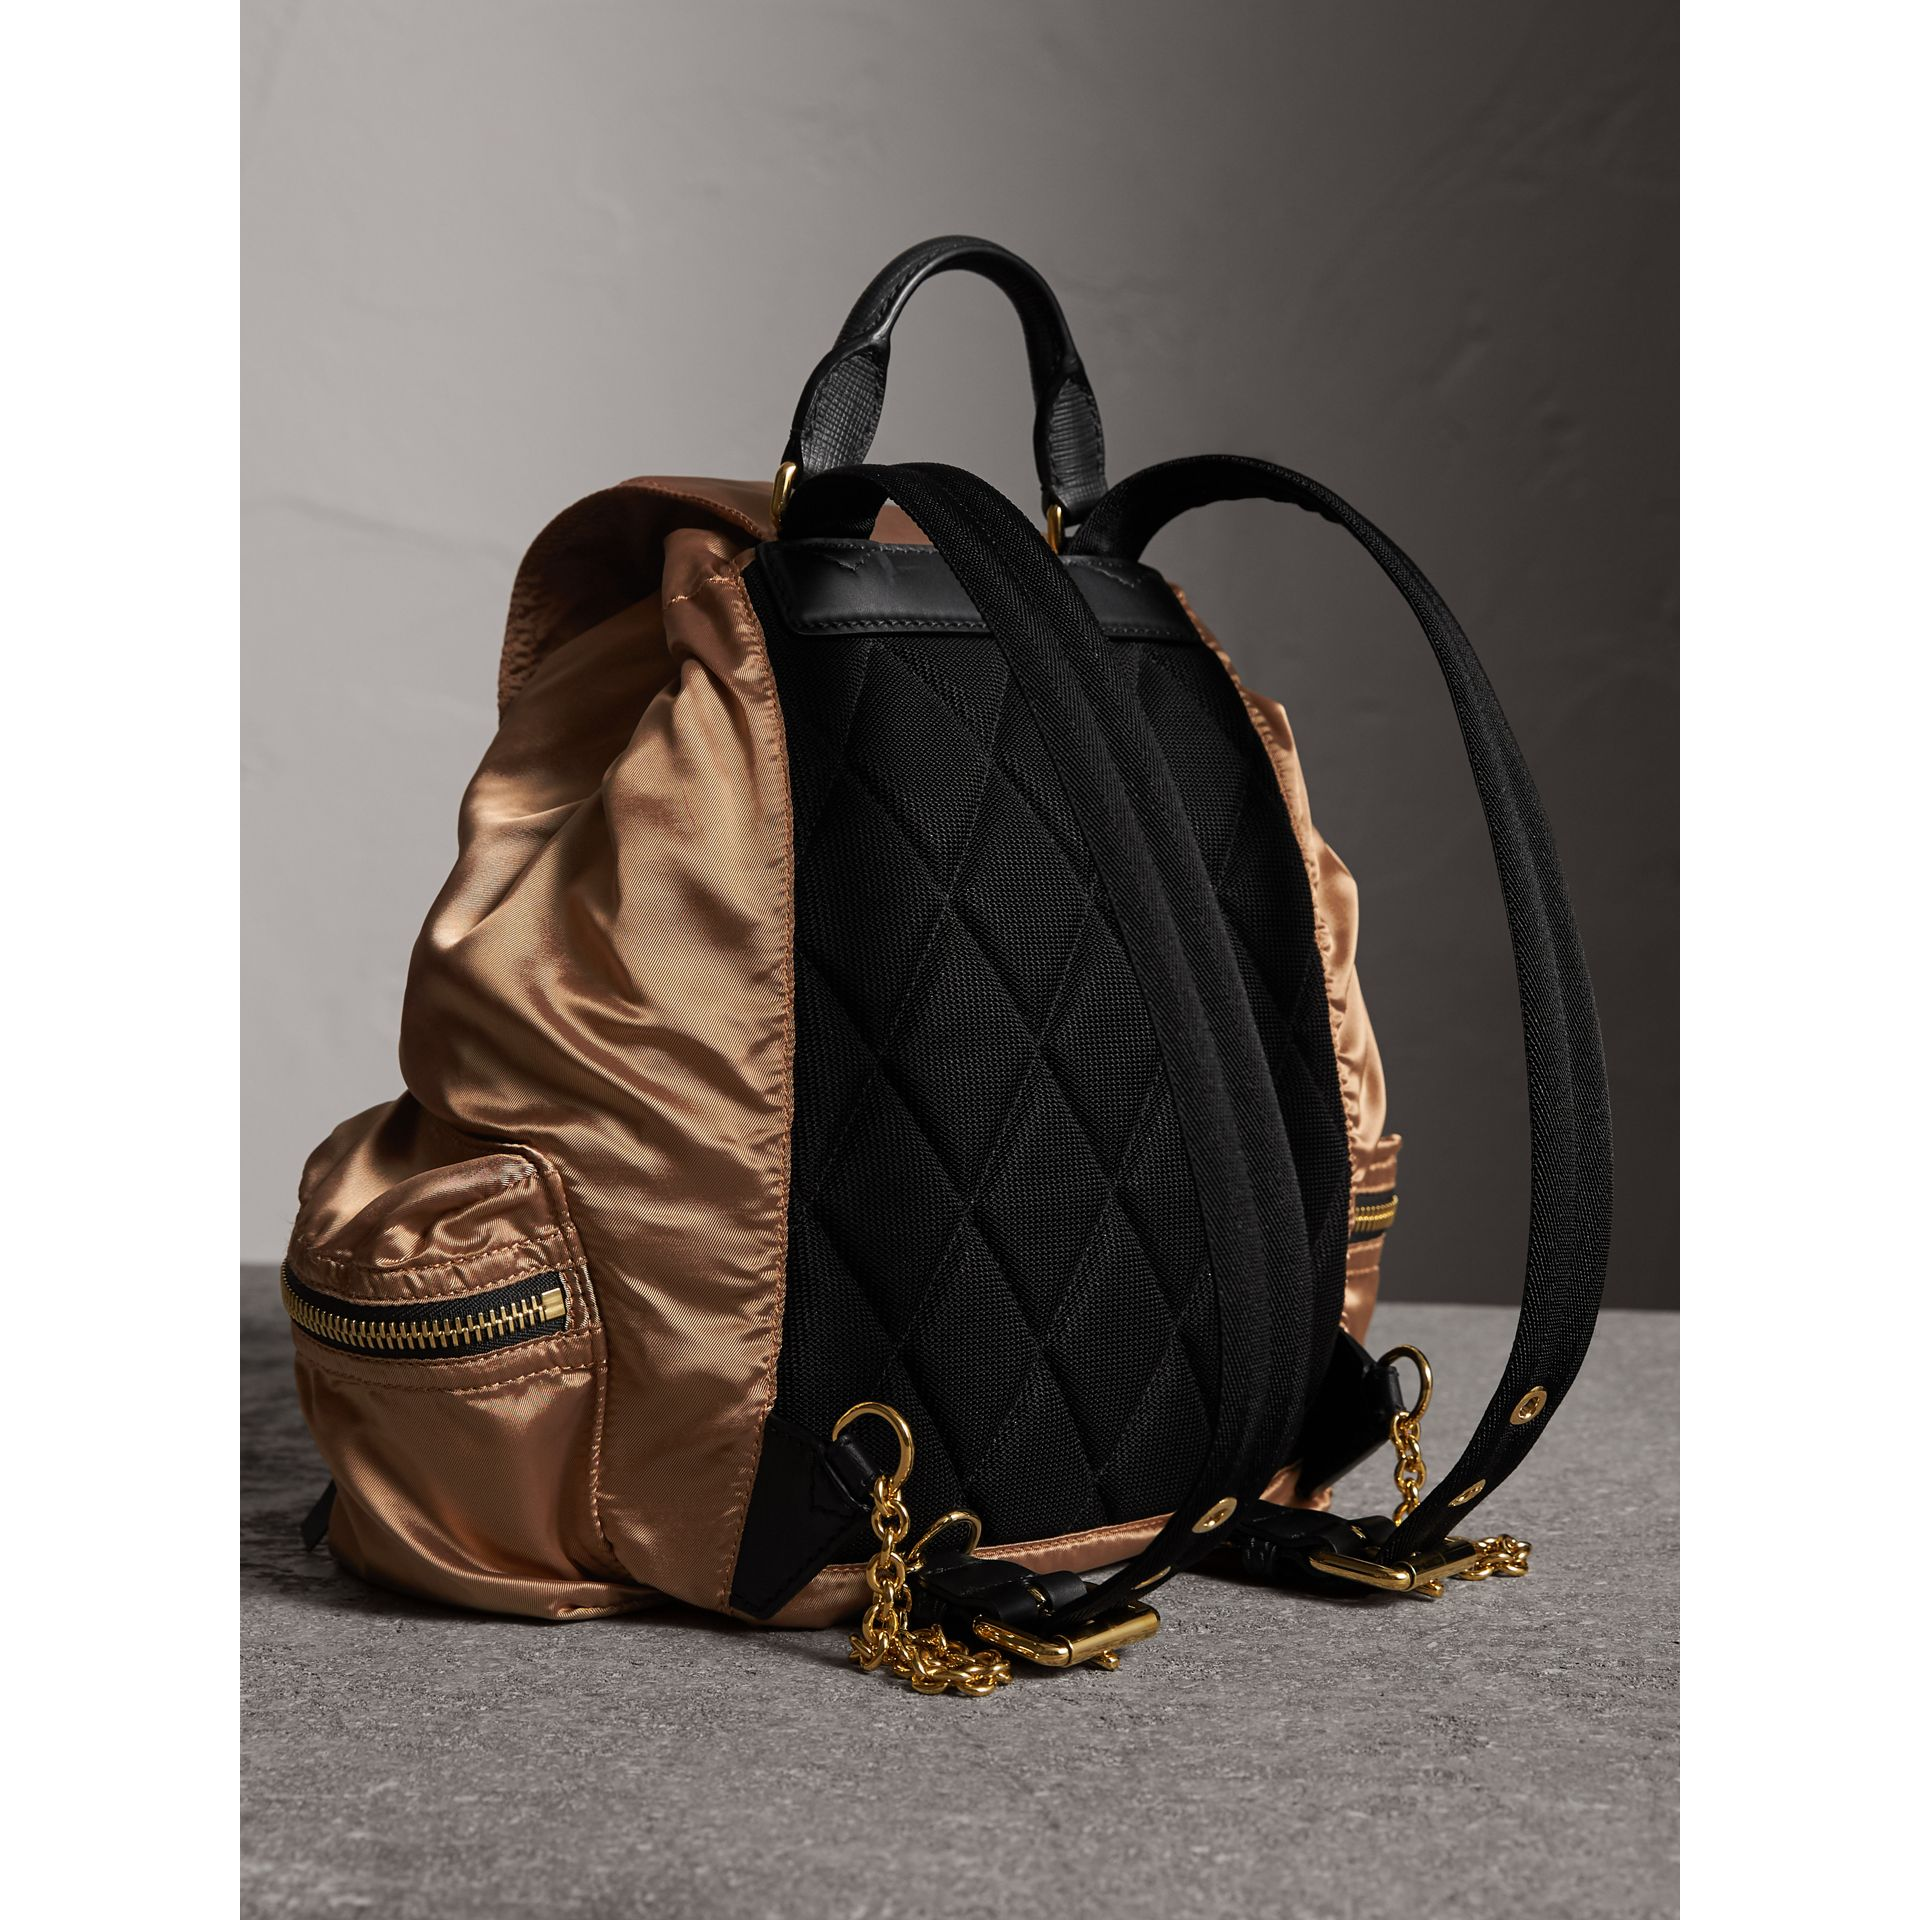 Sac The Rucksack moyen en nylon bicolore et cuir (Or/noir) - Femme | Burberry - photo de la galerie 3